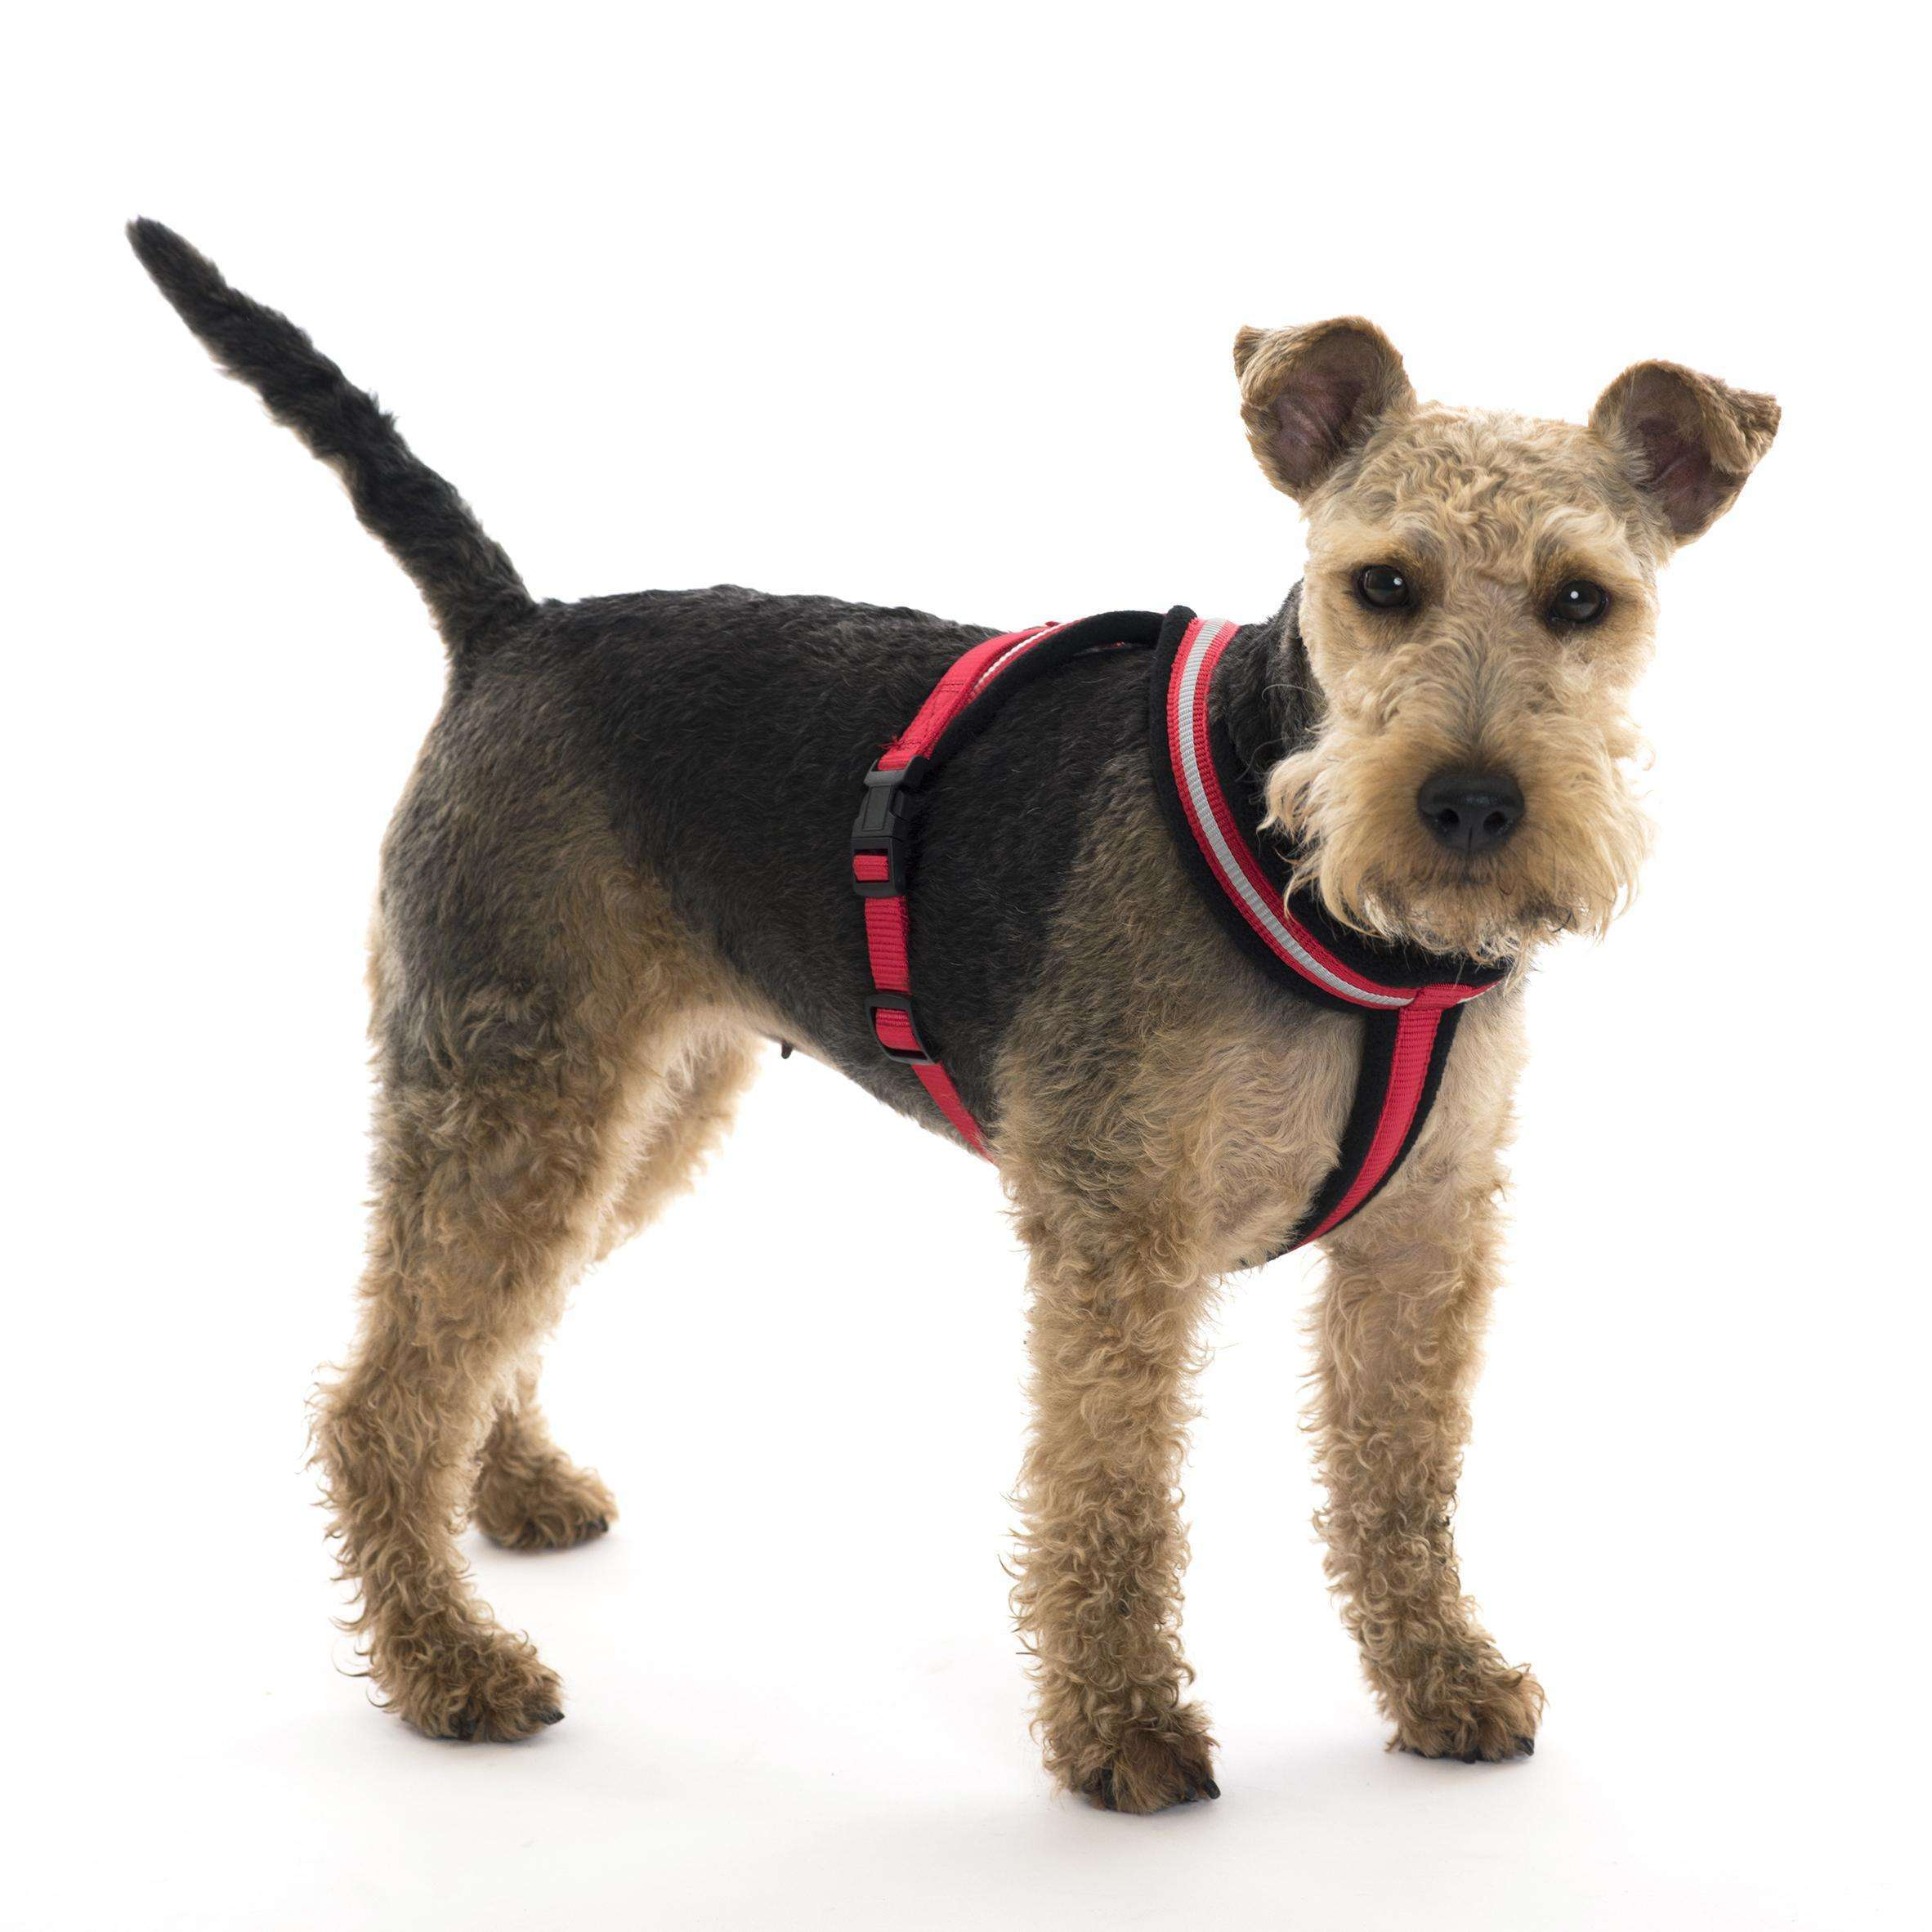 Cheapest price of HALTI Comfy Harness Red - Large in used is £15.52